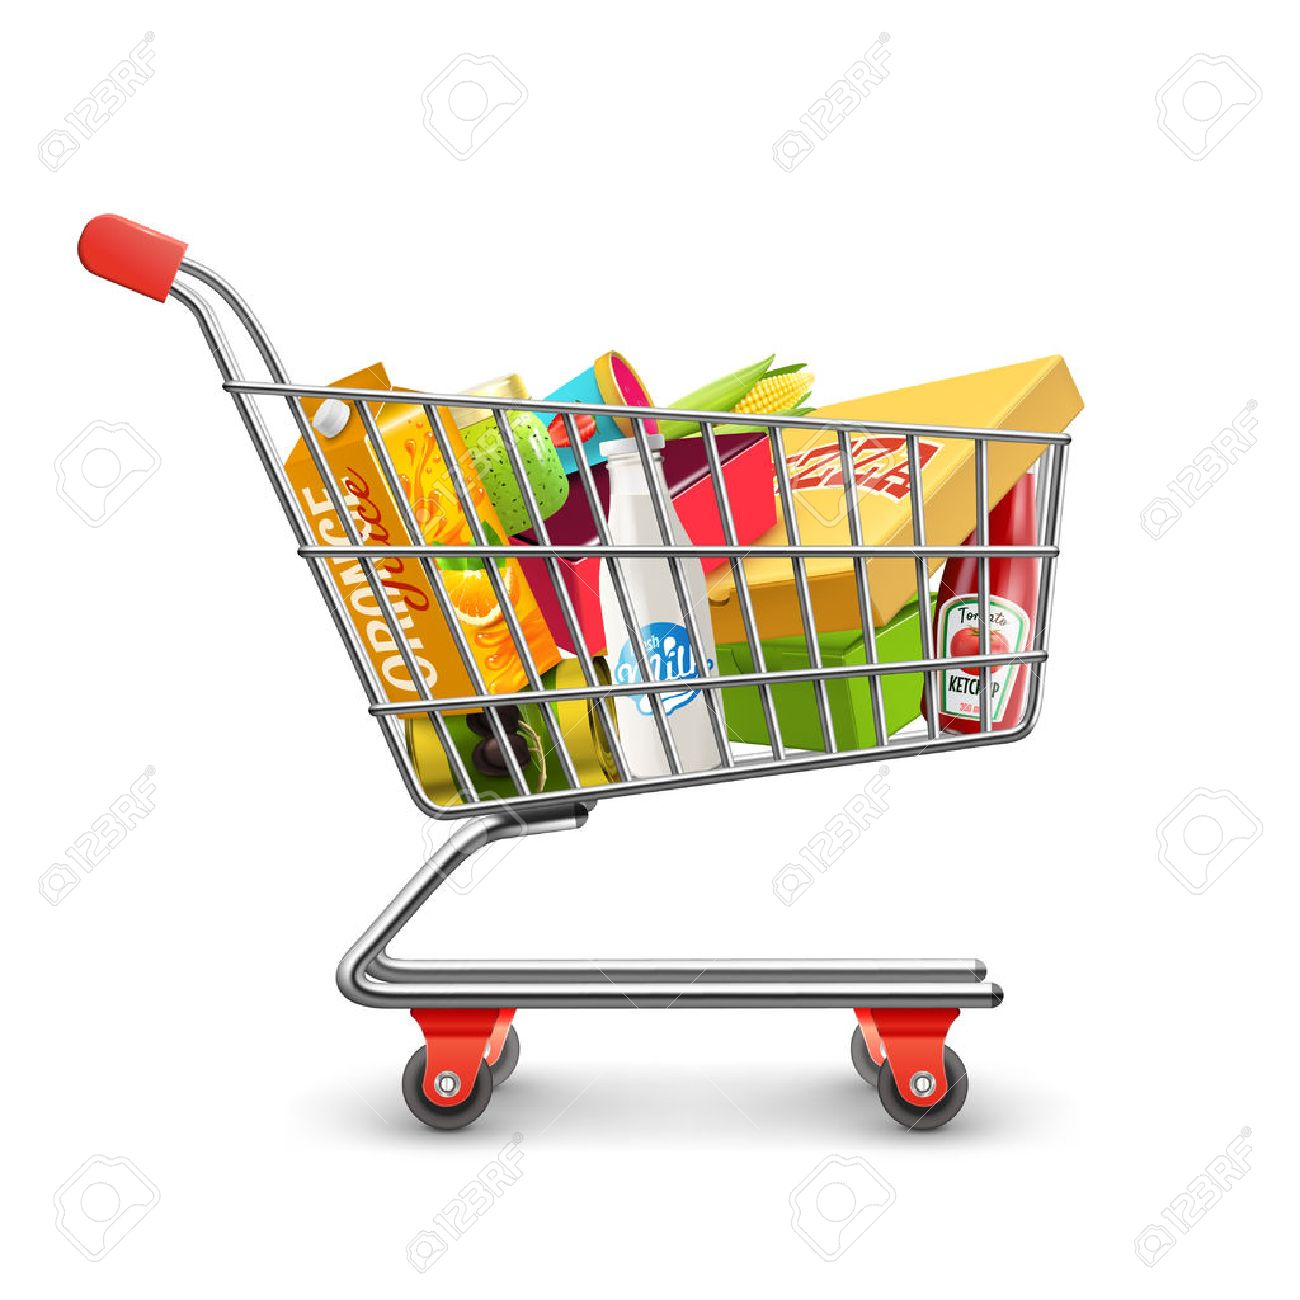 Self-service supermarket full shopping trolley cart with fresh grocery products and red handle realistic vector illustration - 52694854